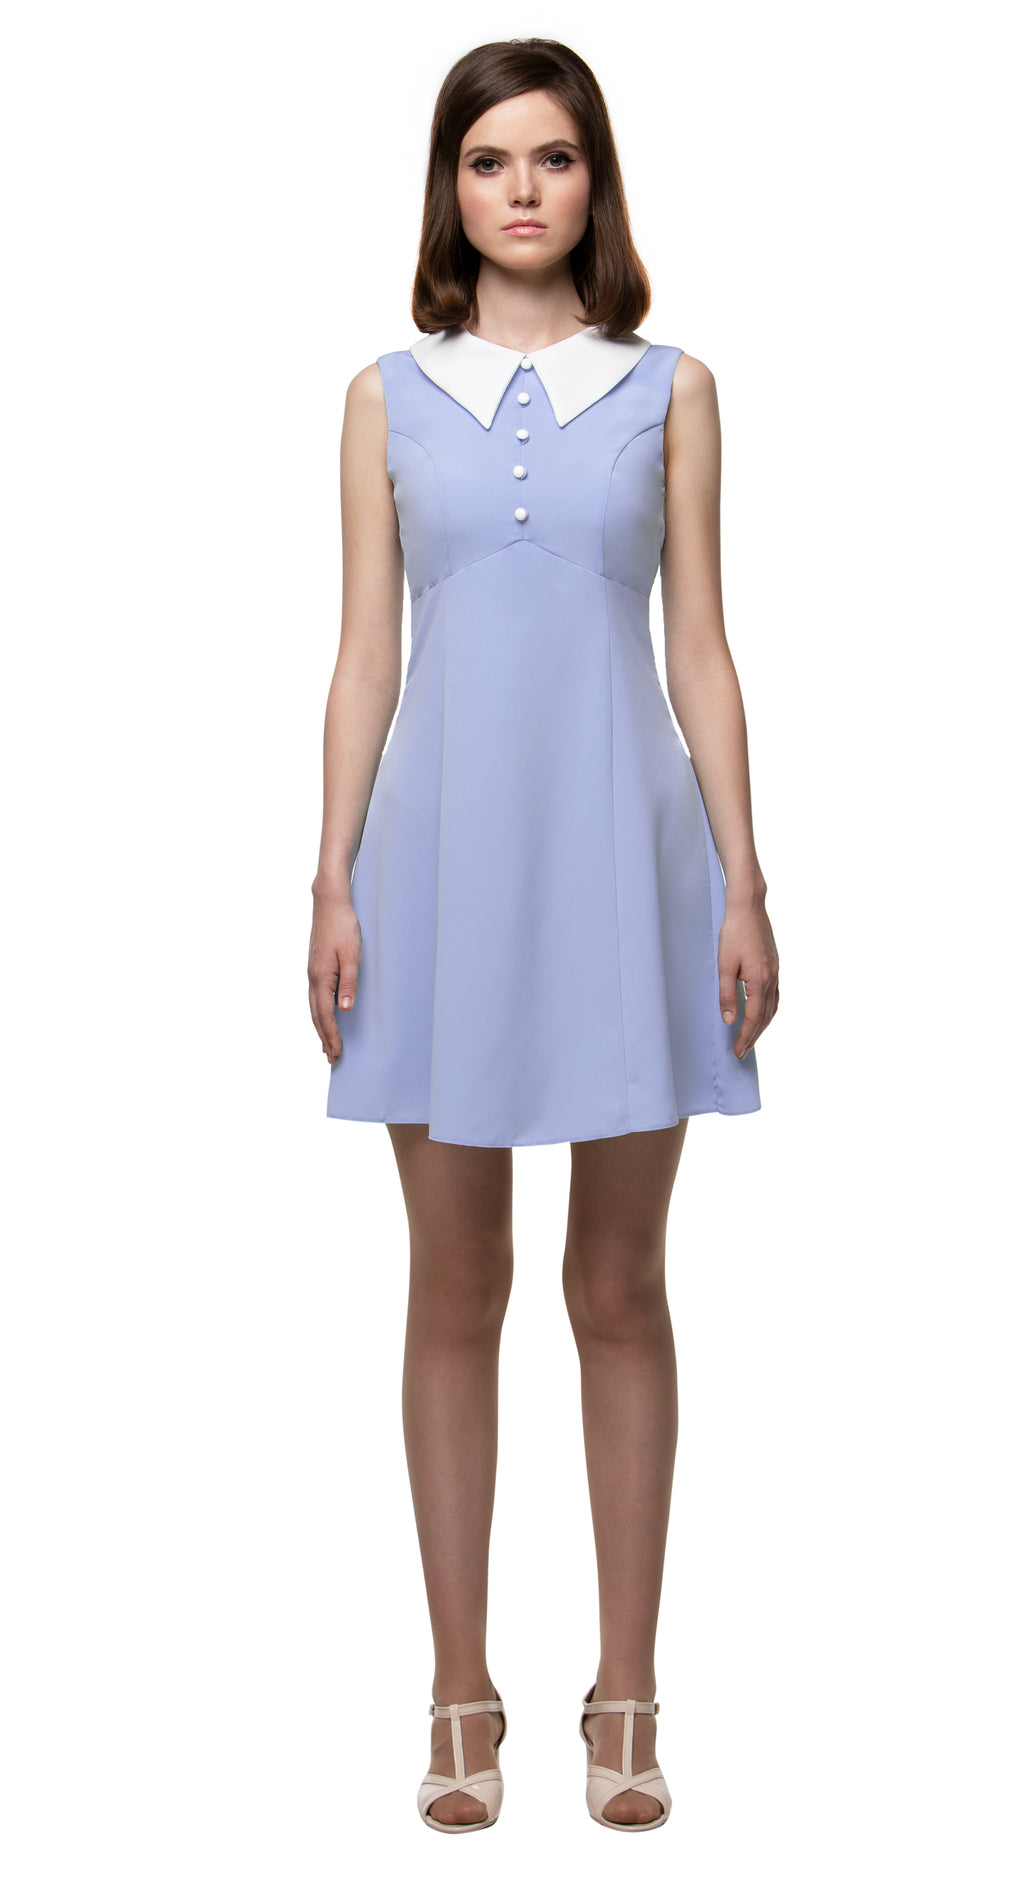 MARMALADE 1960s Style Dress with Collar in Lilac